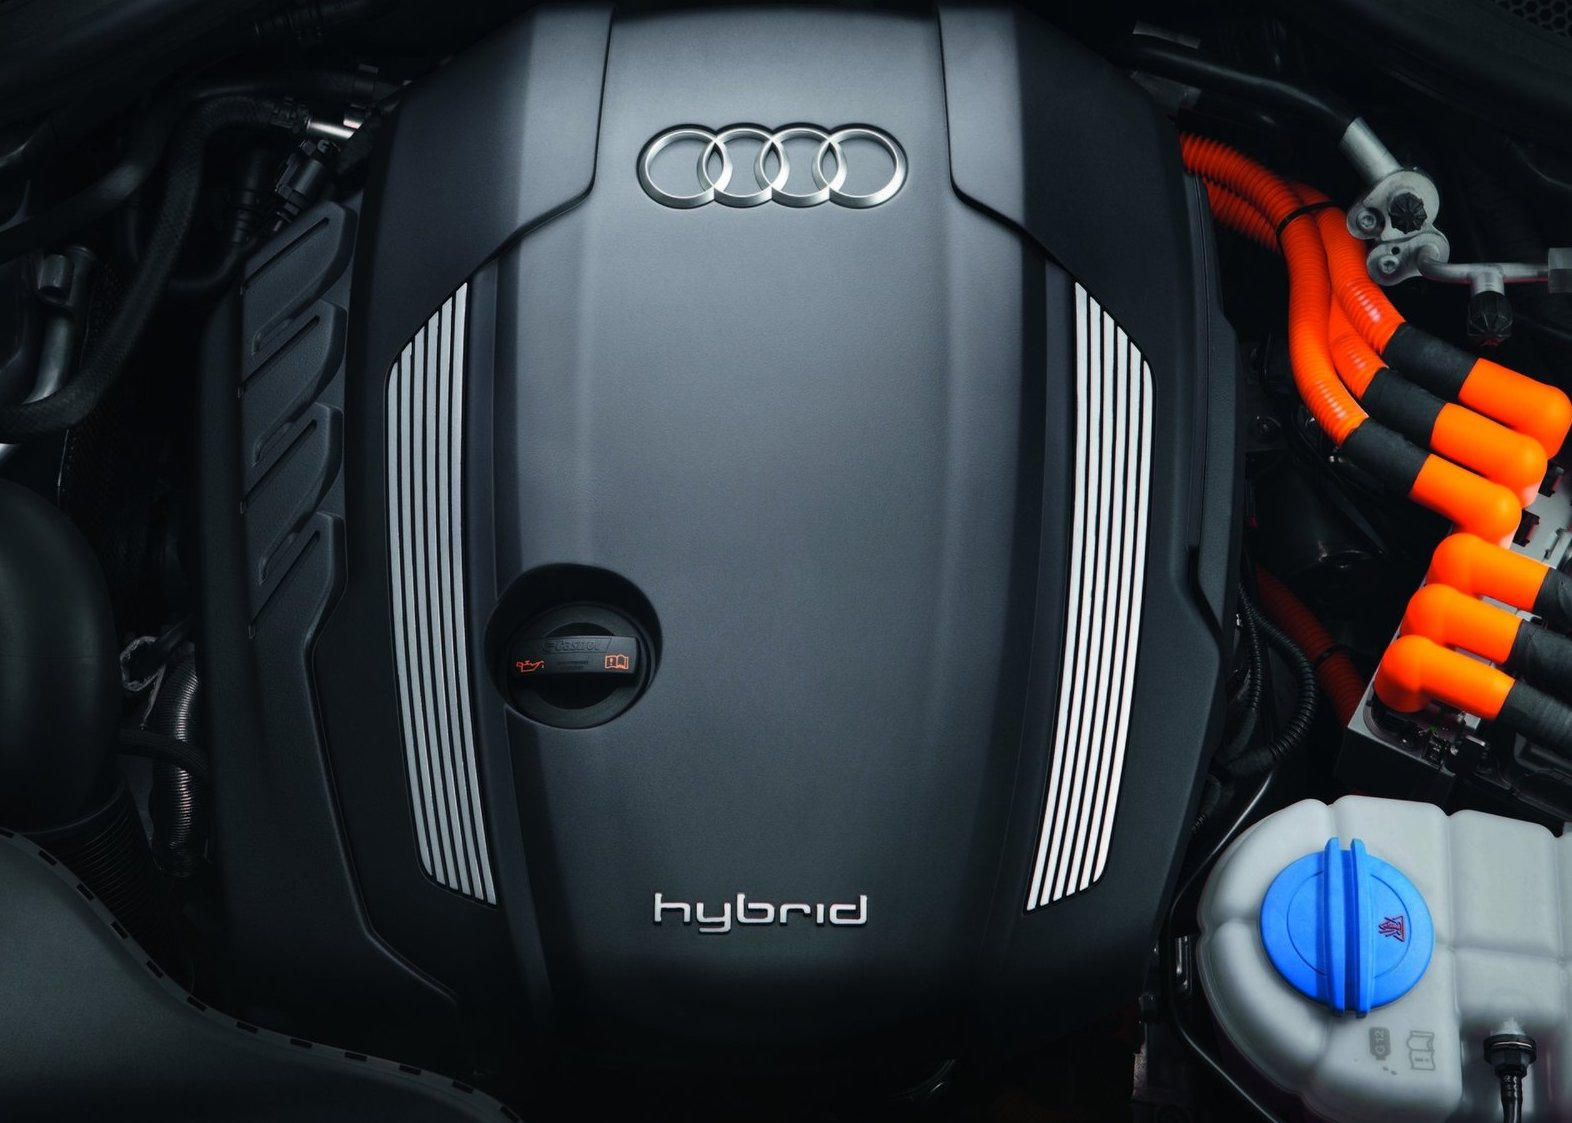 hight resolution of the audi a6 hybrid can achieve speeds of up to 100km h purely on electricity at a constant speed of 60km h it has a range of 30km when new